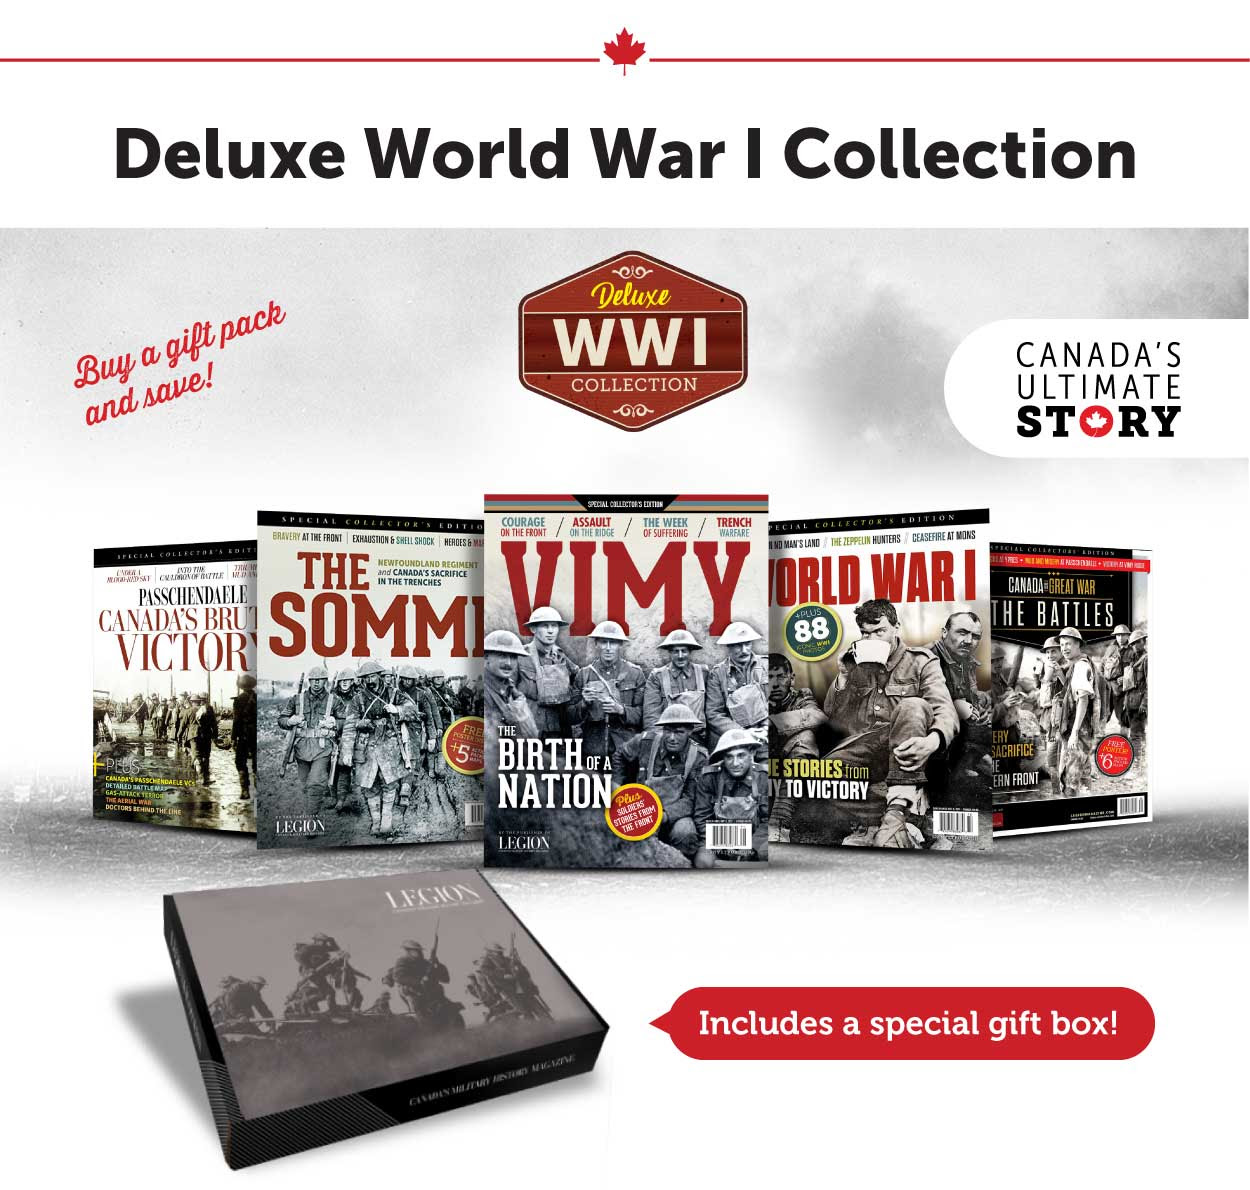 Deluxe World War 1 Collection